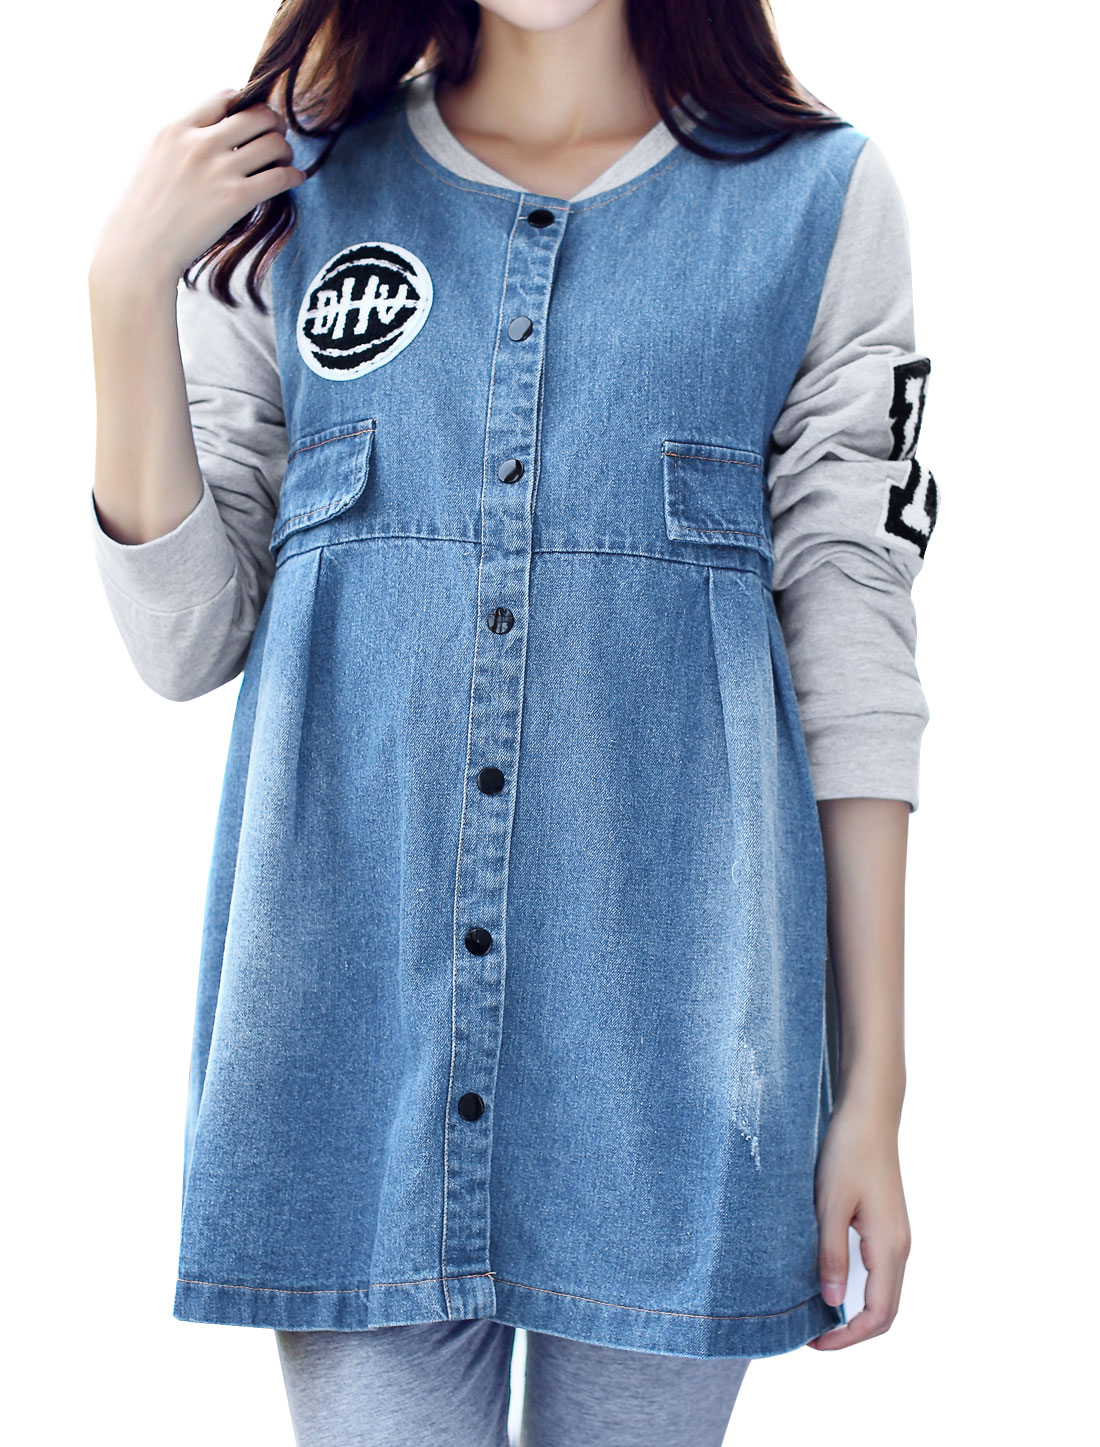 Maternity Stand Collar Contrast Color Appliques Tunic Denim Jacket Gray Blue L